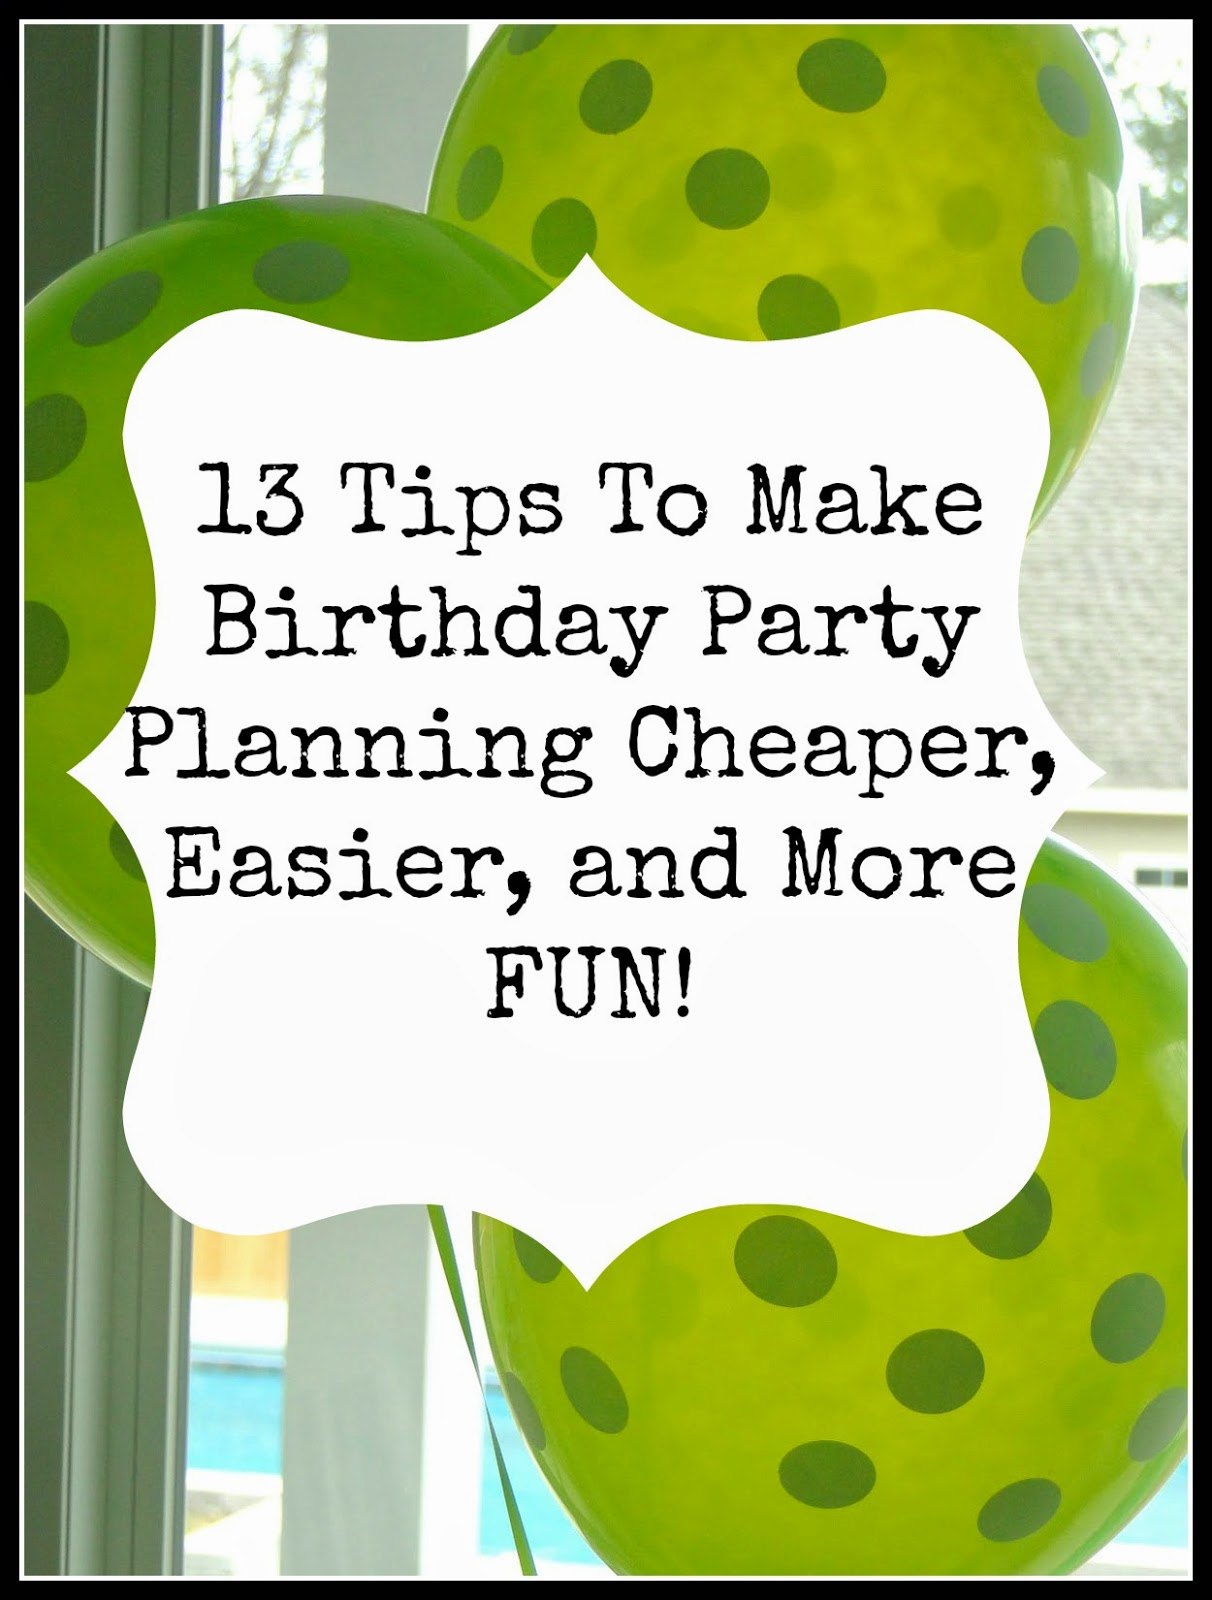 Tips for Birthday Party Planning